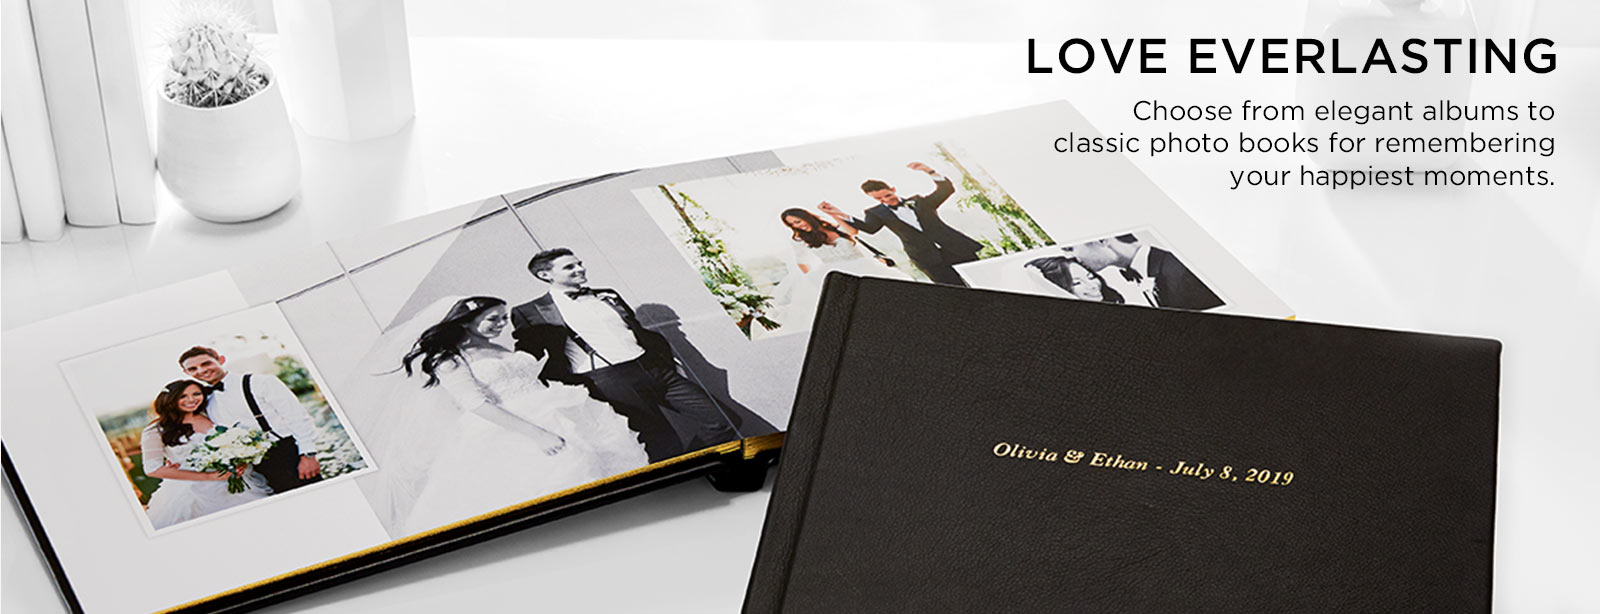 Wedding Photo Albums Wedding Photo Books Shutterfly